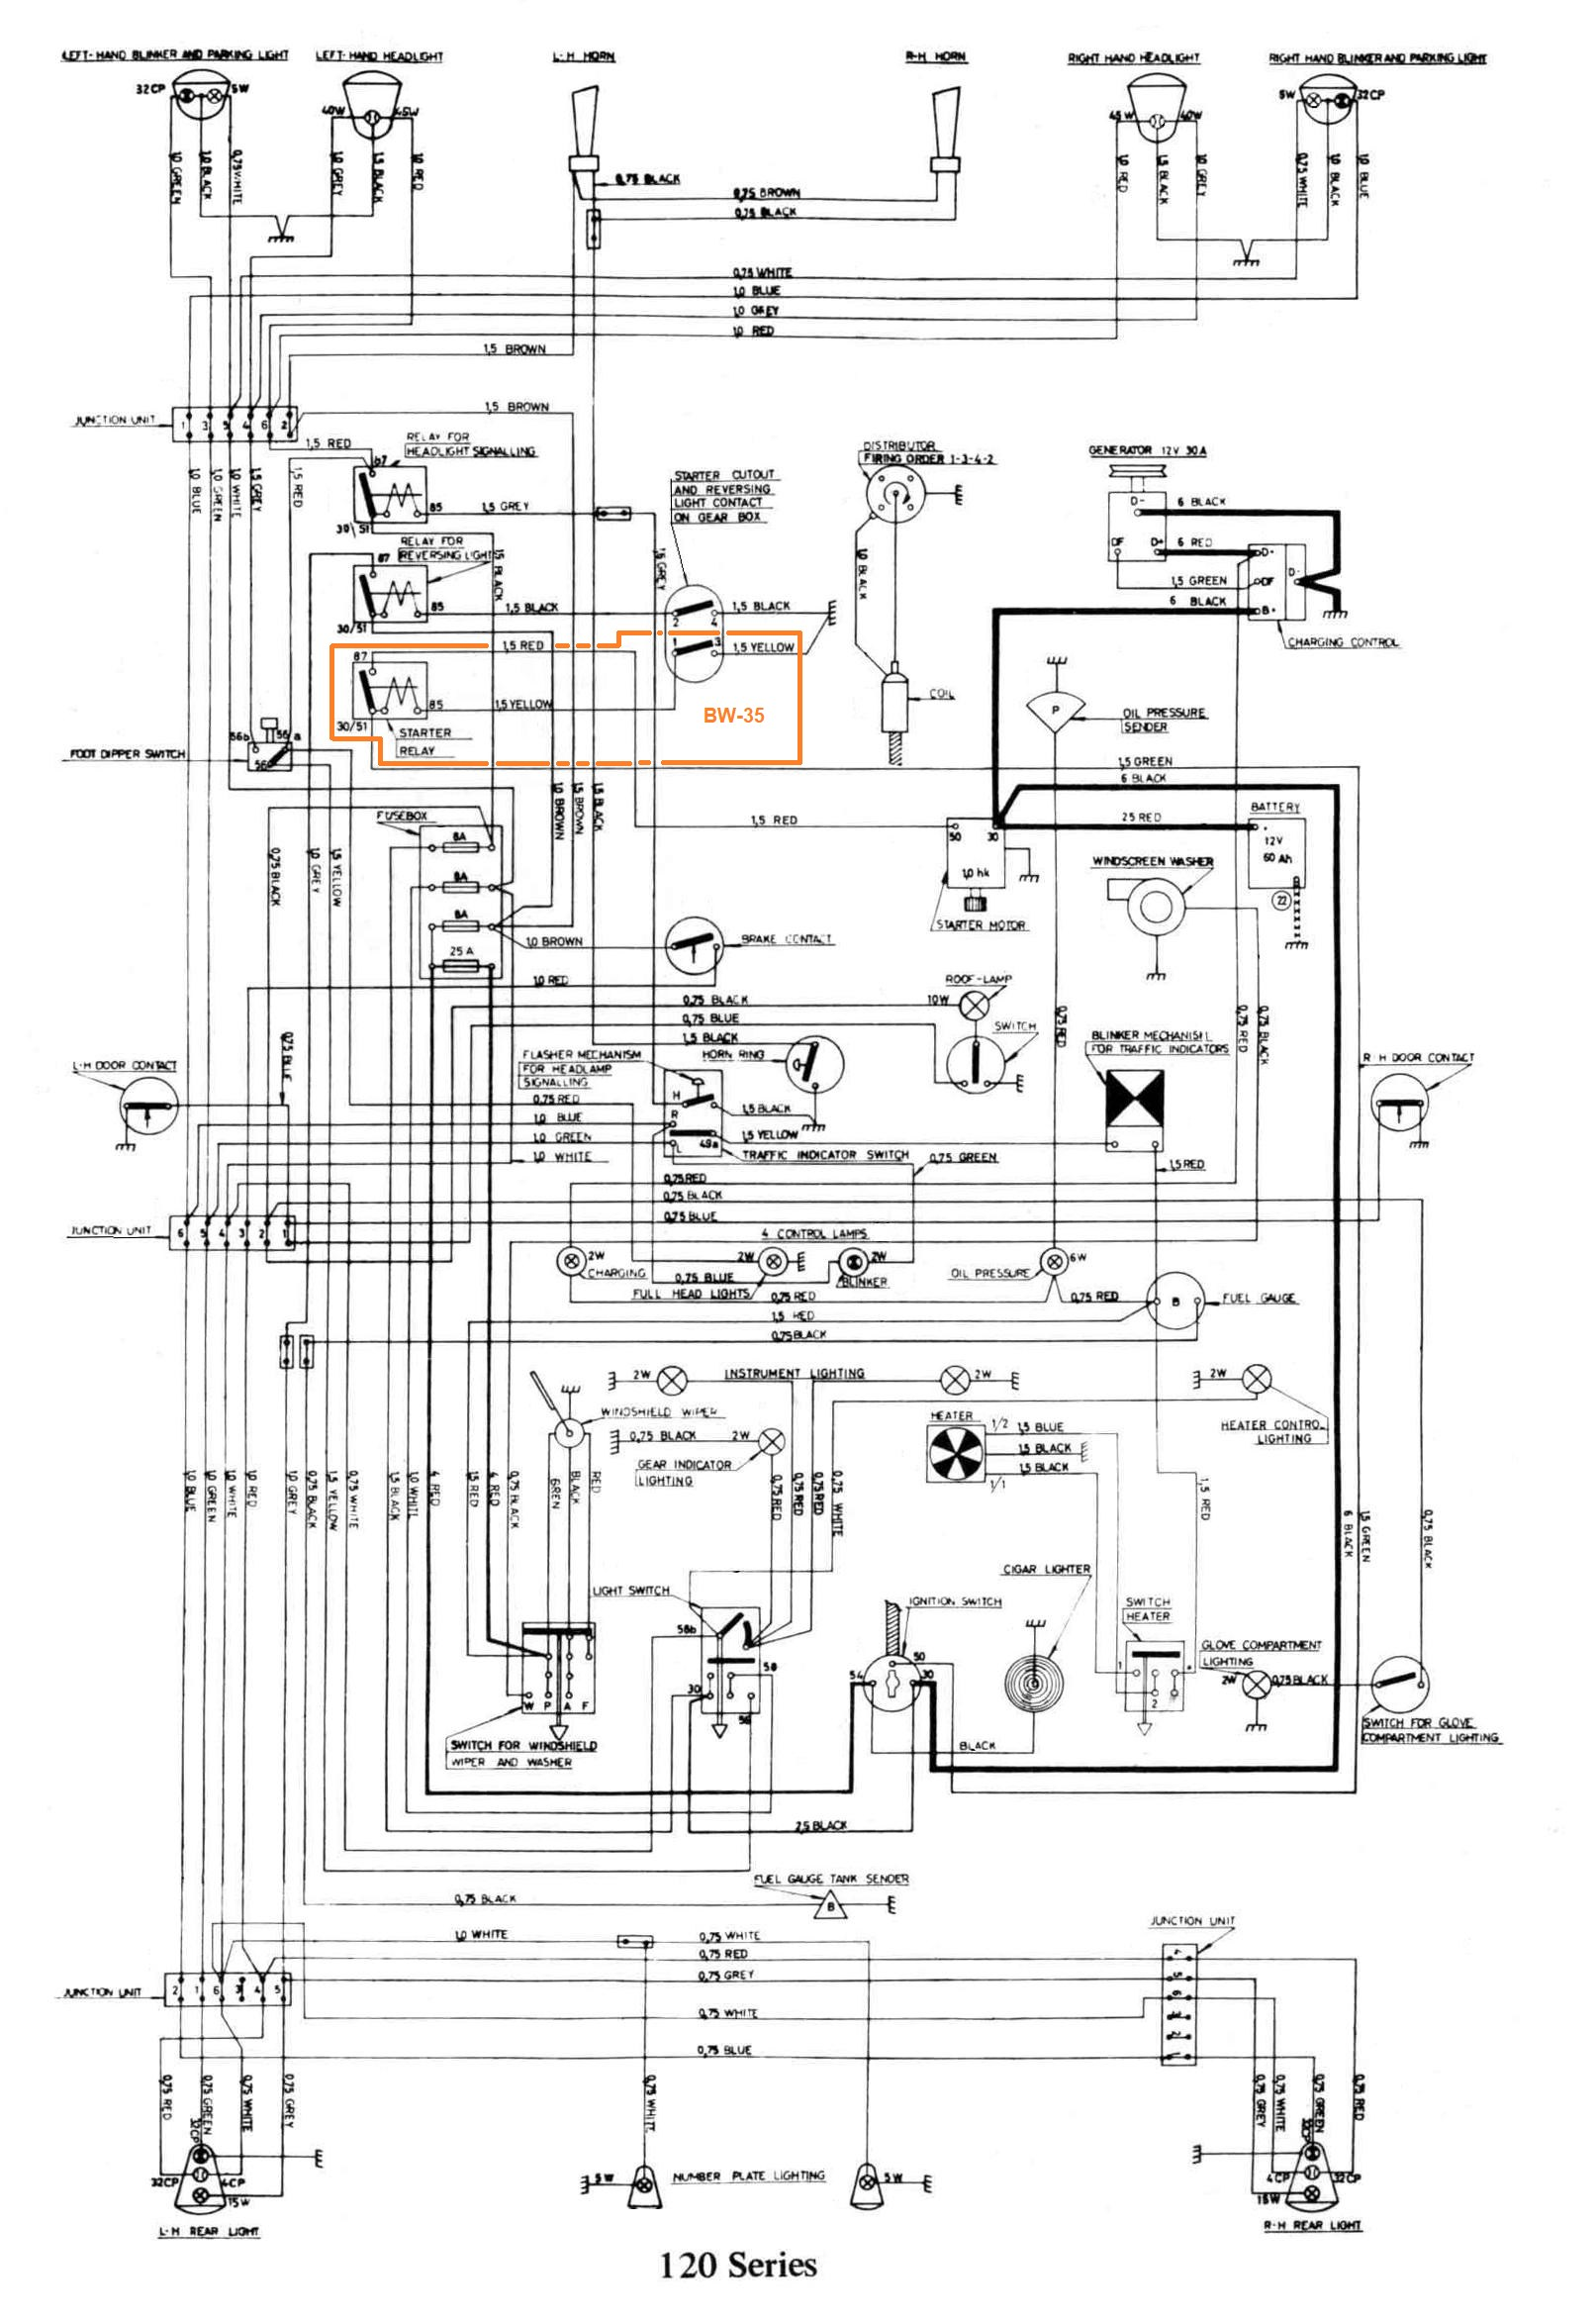 hight resolution of 2001 volvo wiring diagrams wiring diagram blogs volvo sd75 wiring diagrams 2000 volvo wiring diagram